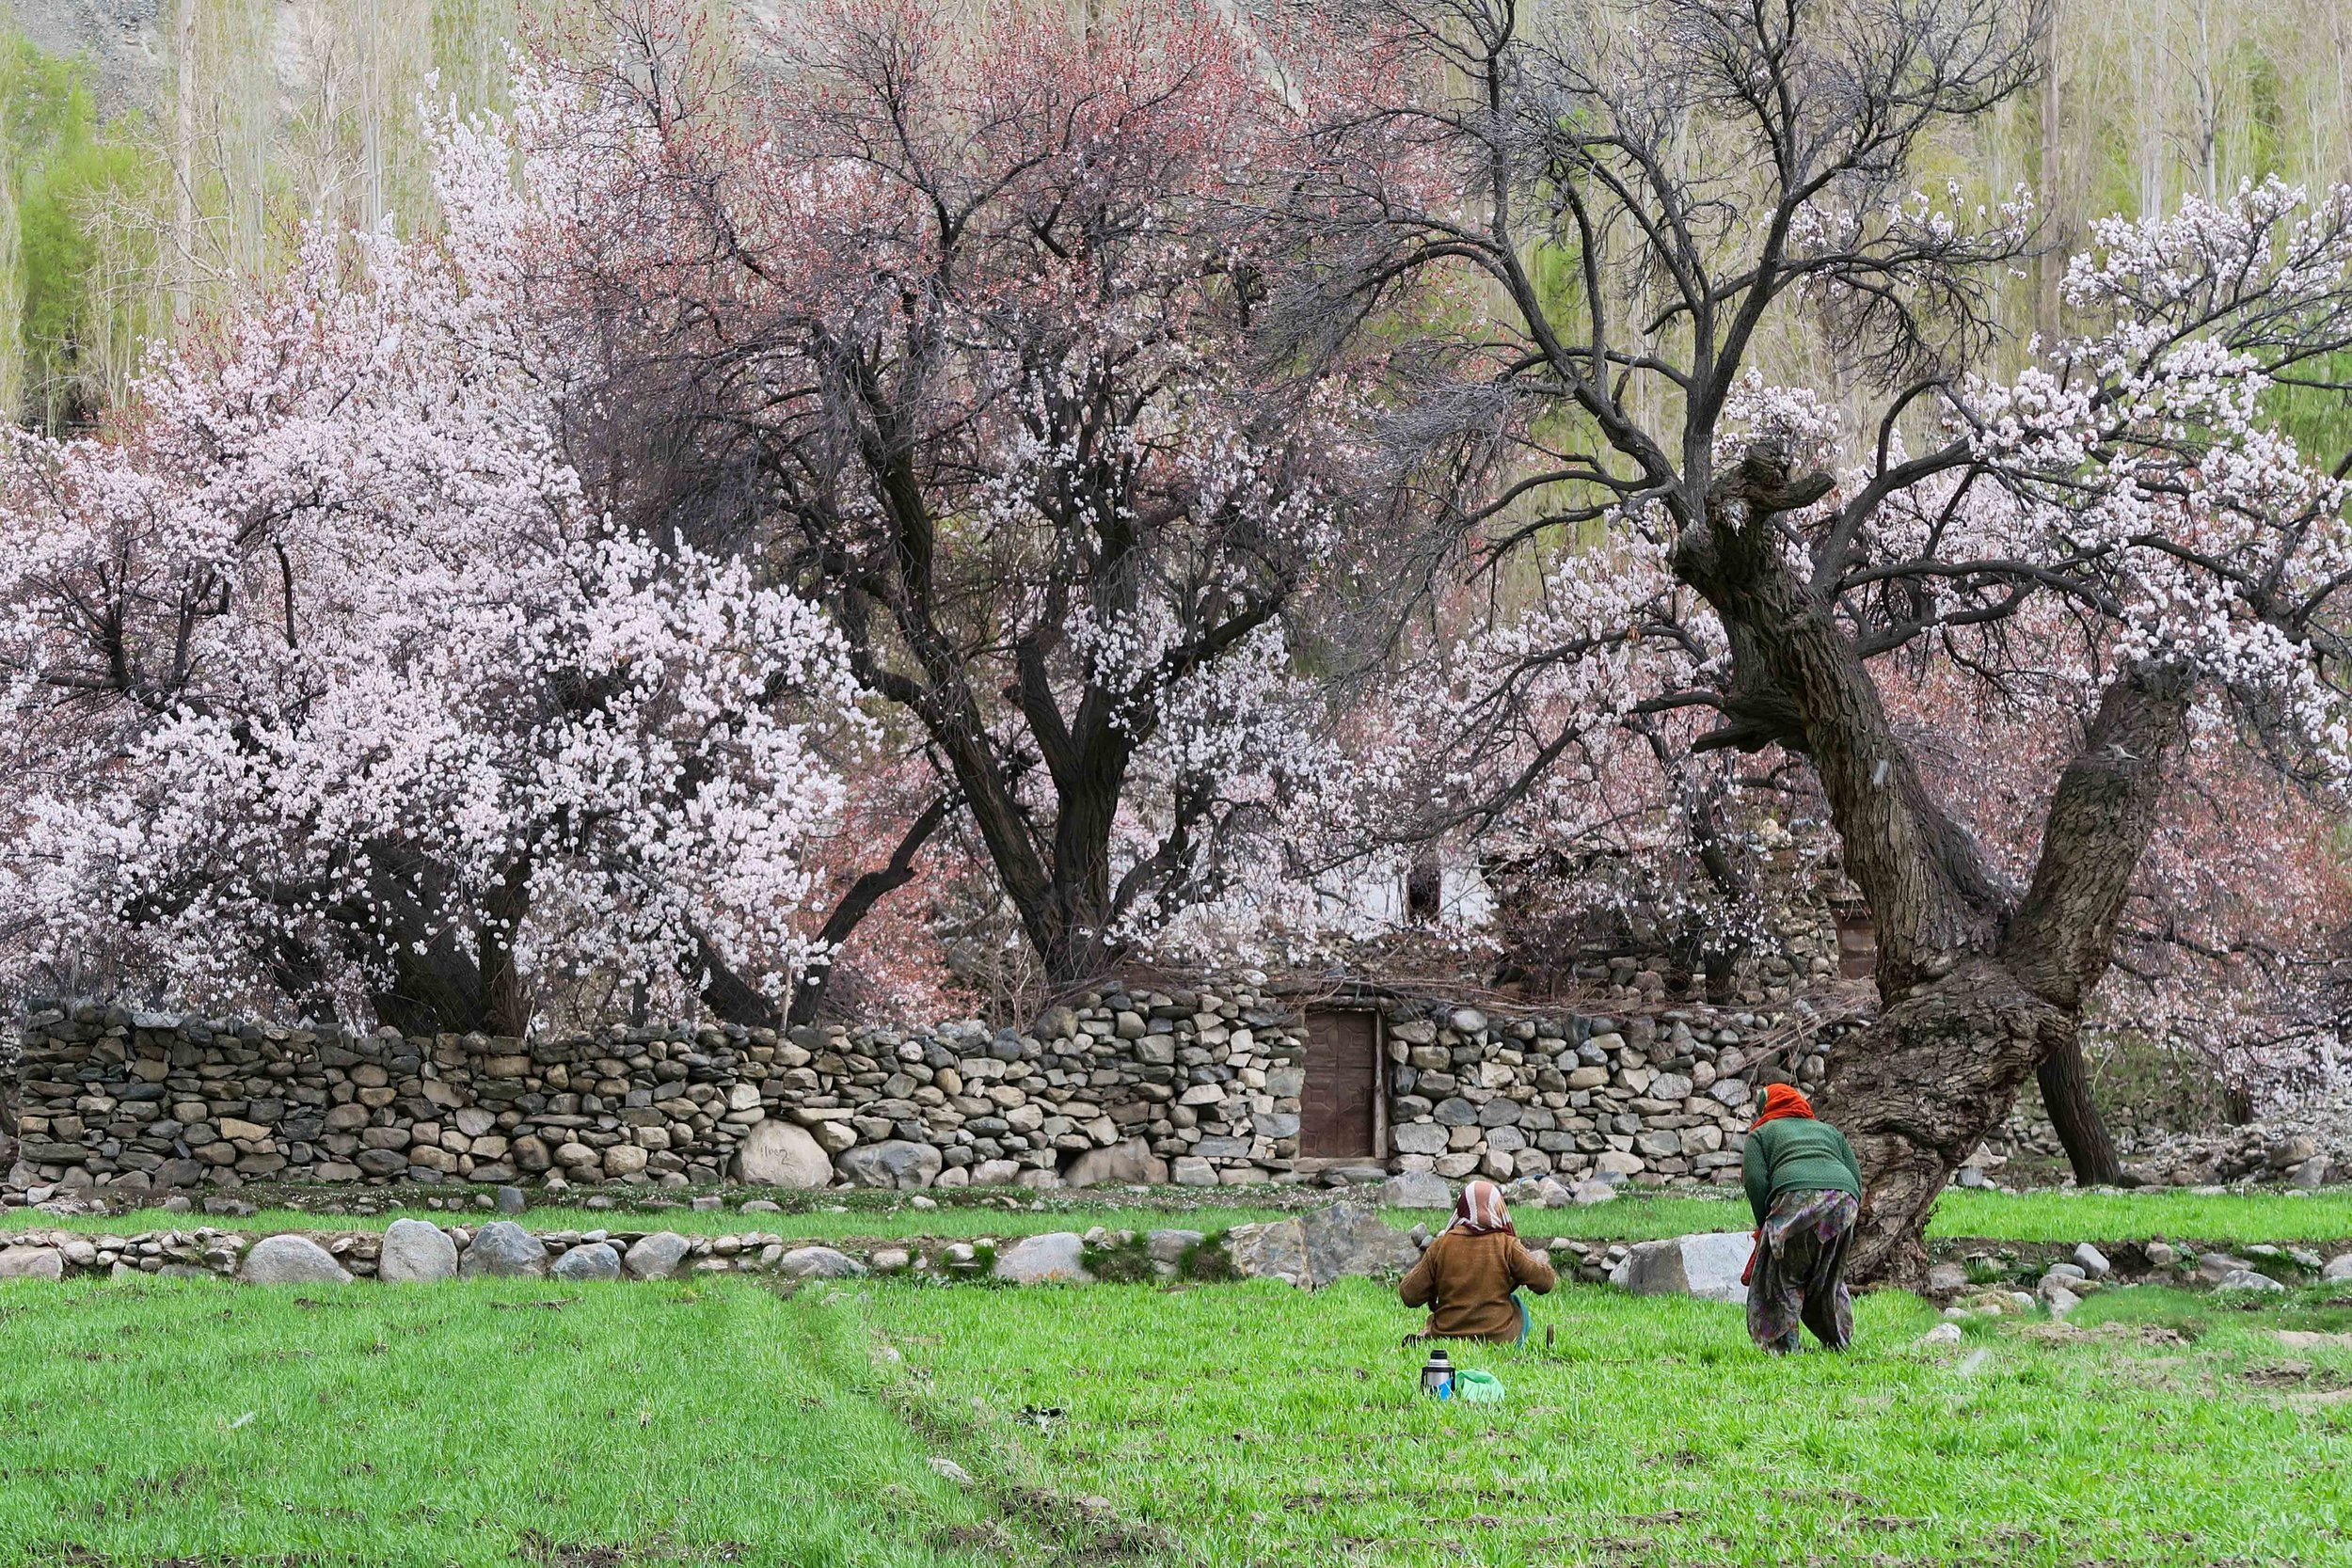 Stunning Apricot trees in blossom in Turtuk where I started my journey